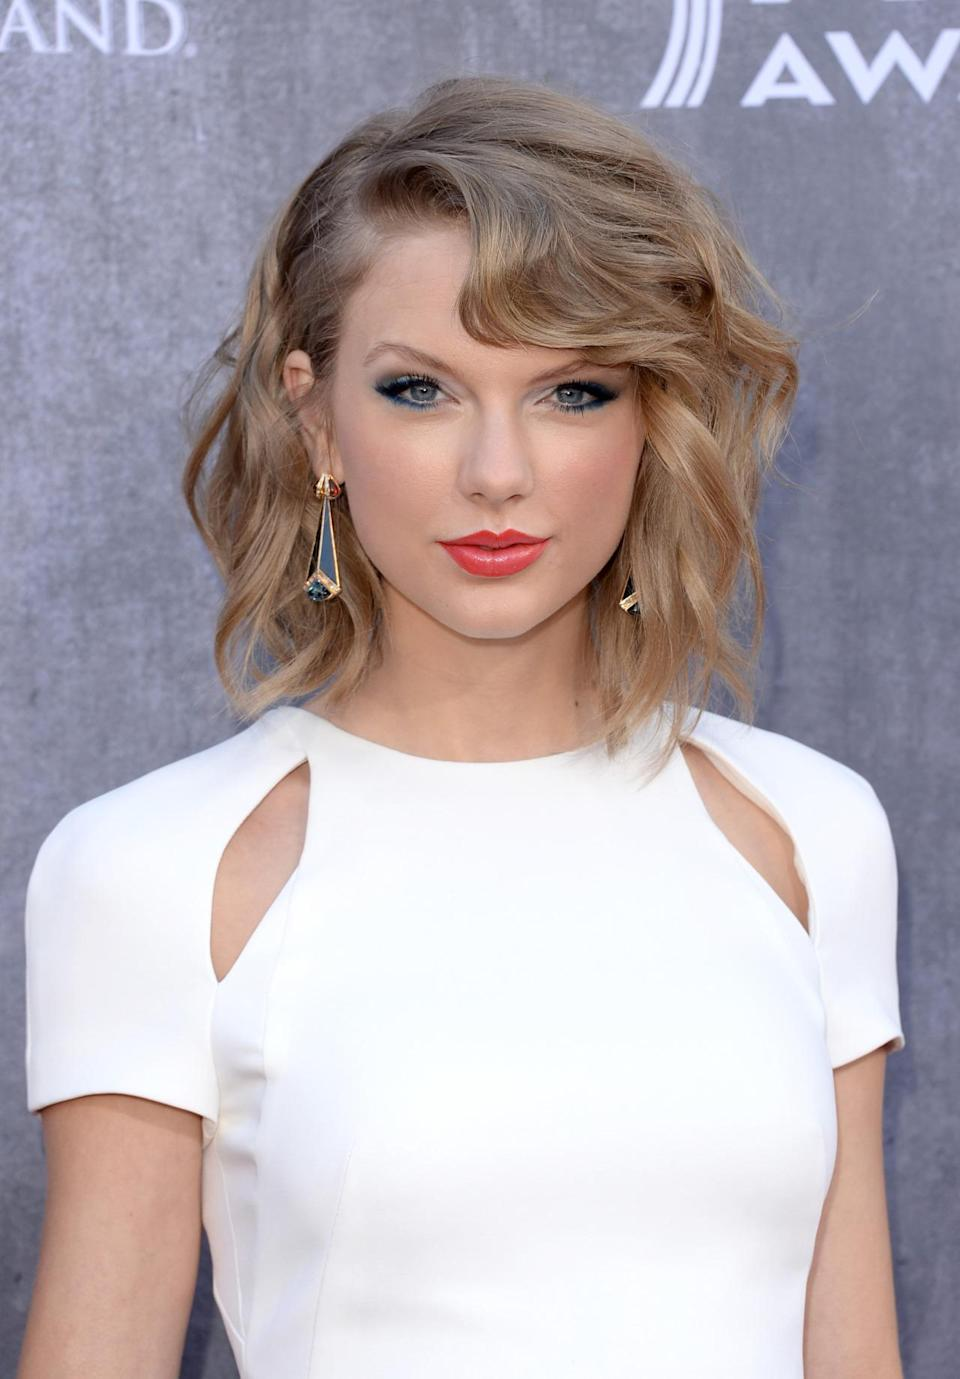 <p>Taylor Swift transformed from a country sweetheart to BFF of Victoria's Secret Angels with grown-up look. <i>(Photo: Getty Images)</i></p>